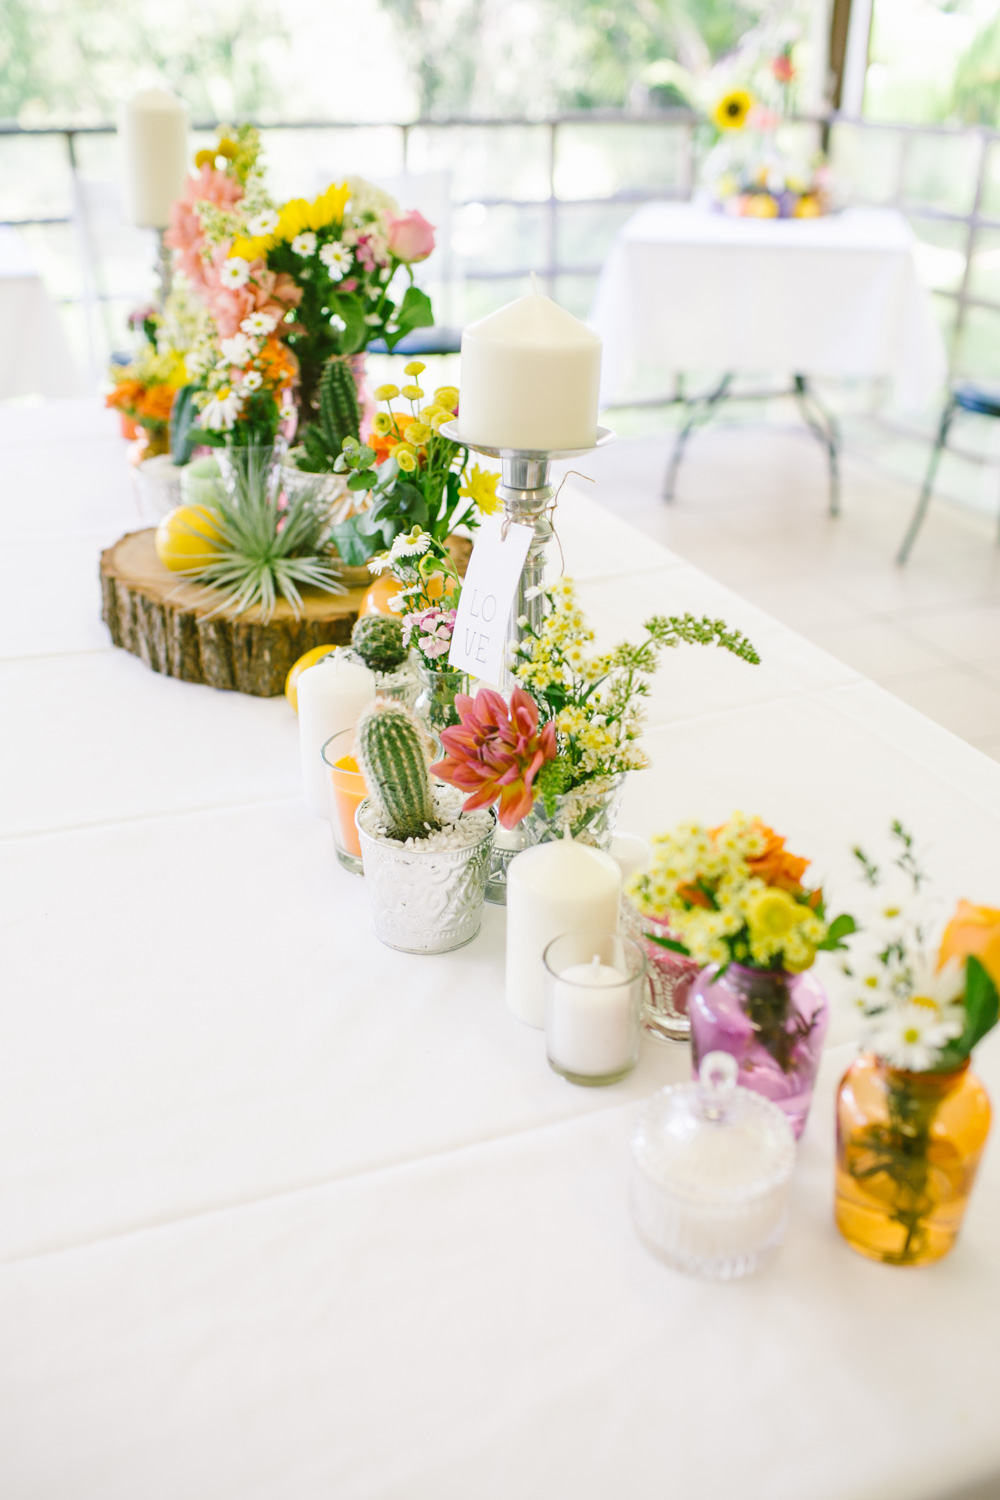 Light and bright modern wedding styling theme. Sydney wedding stylist - Byron Bay wedding stylist - Northern Beaches wedding styling